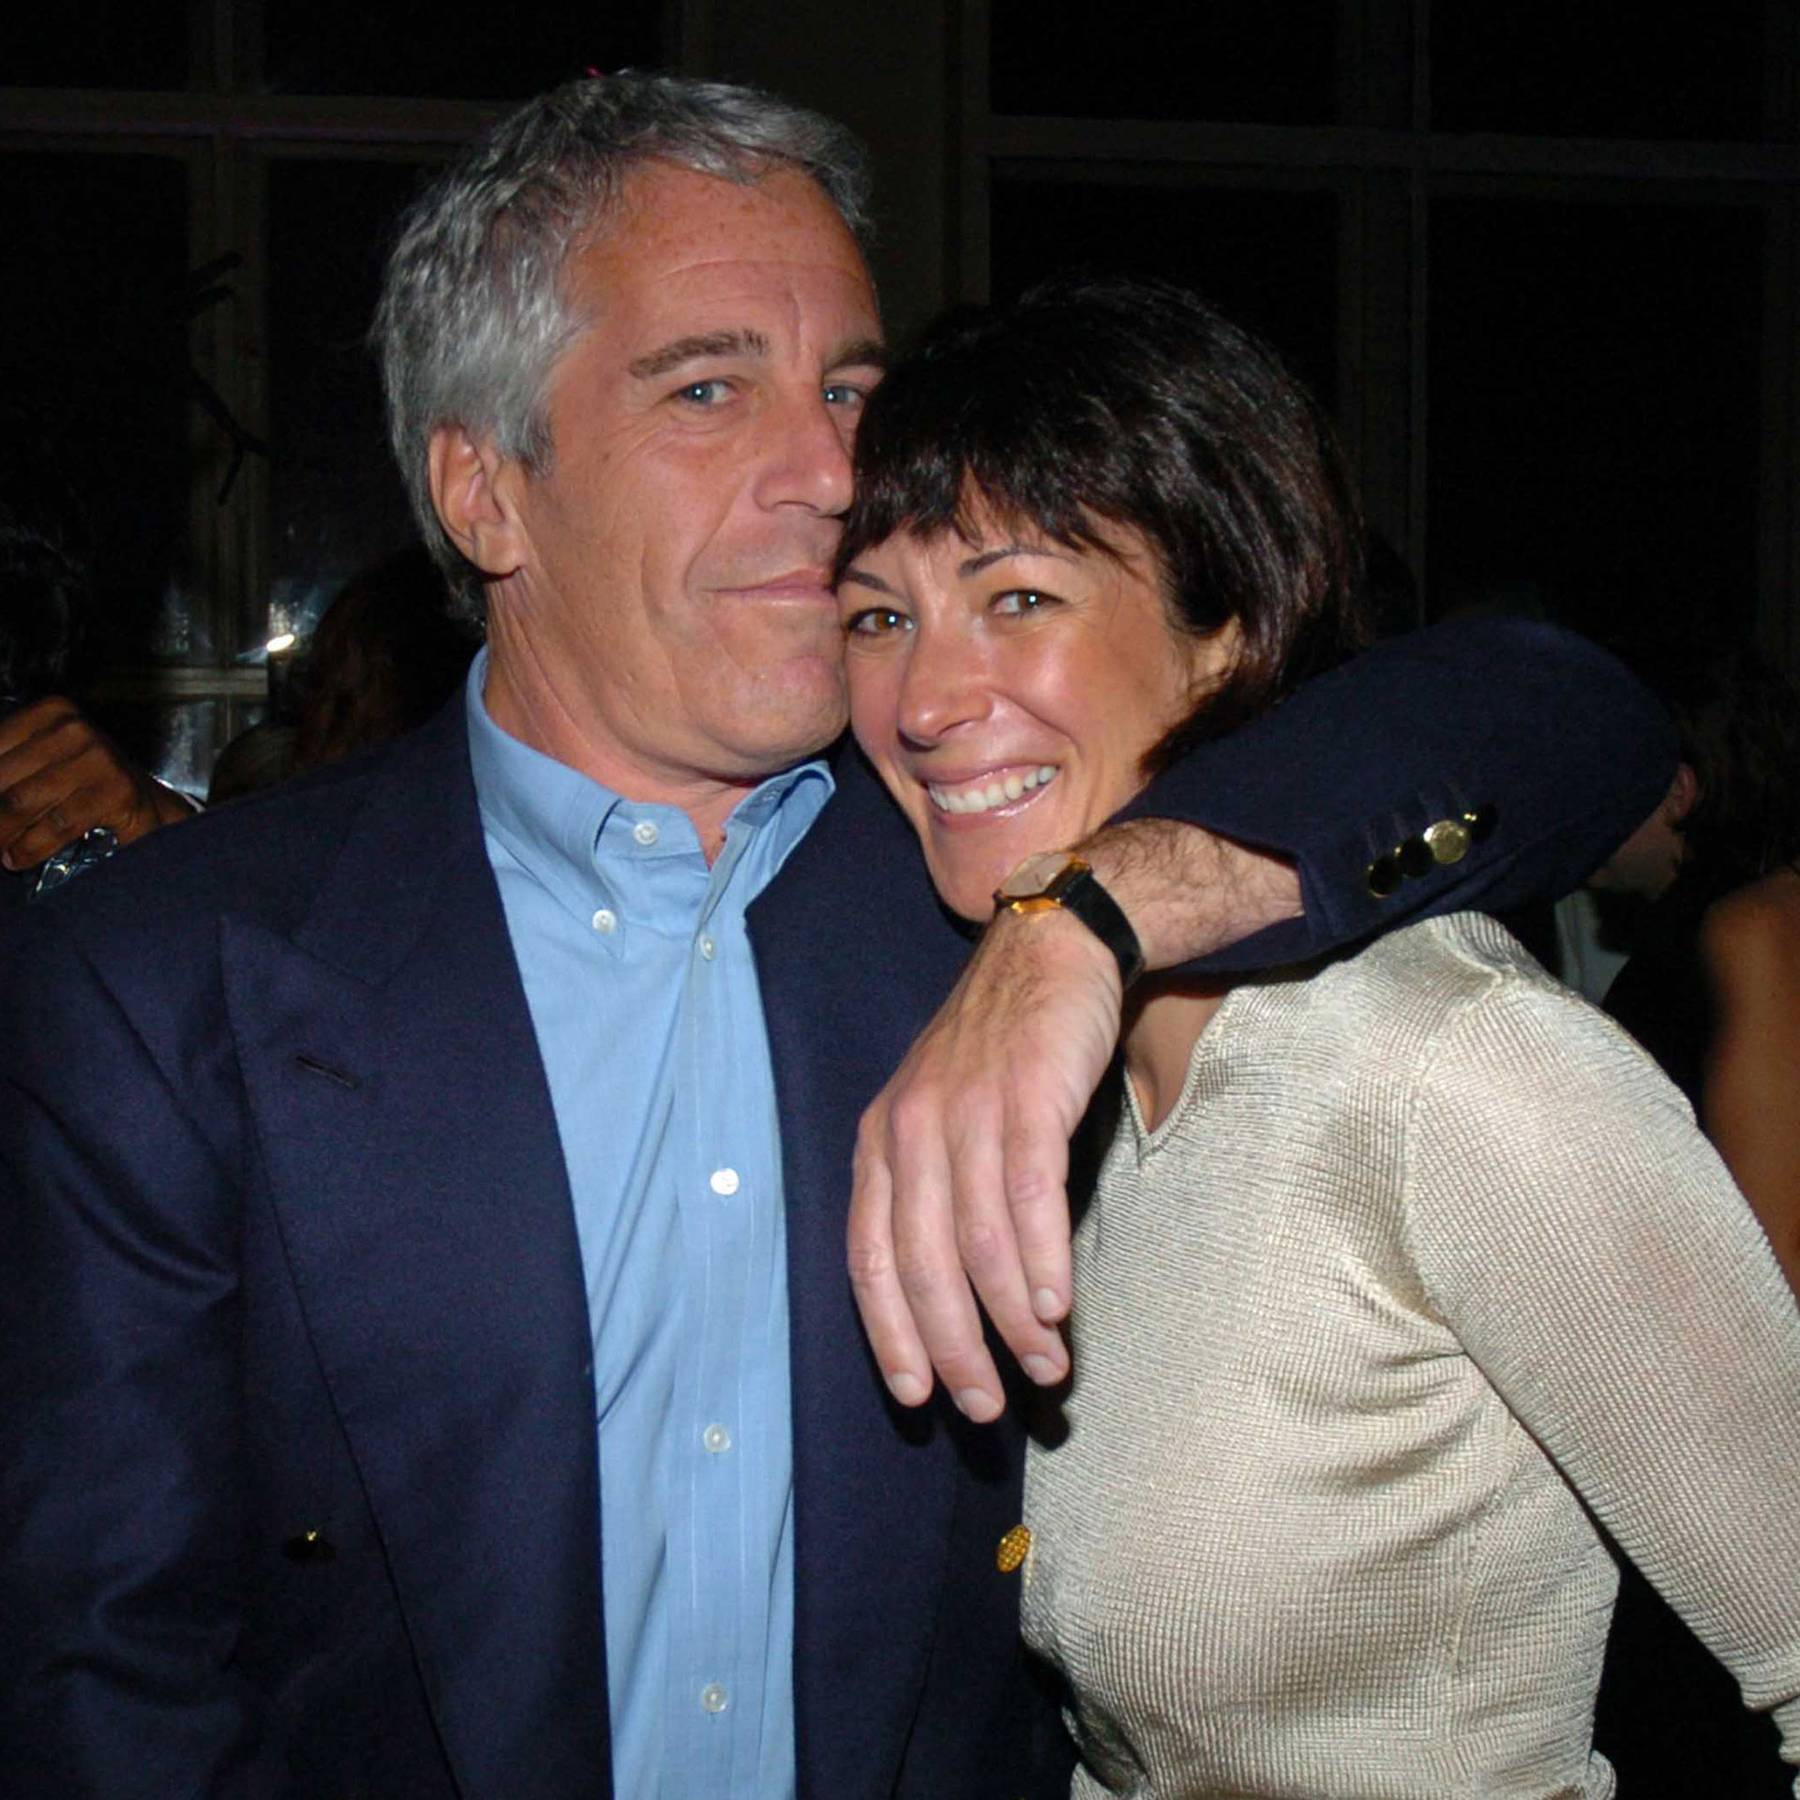 Ghislaine Maxwell to make first court appearance remotely after ...